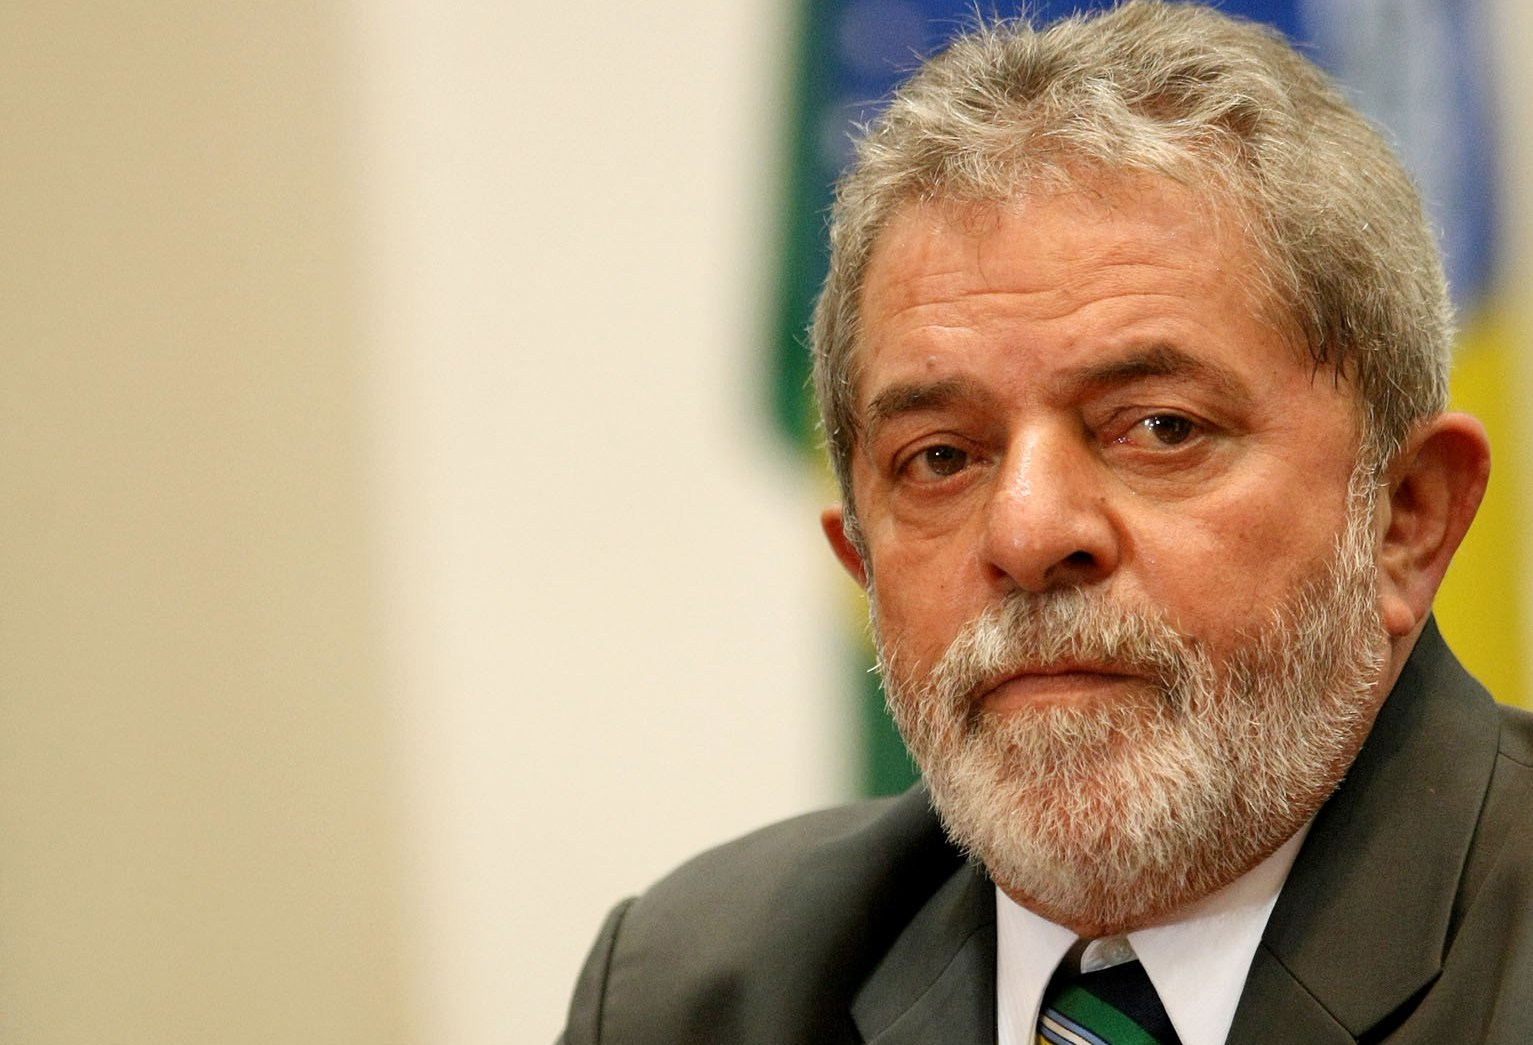 Ex-presidente deixa sede do Instituto Lula para destino ignorado